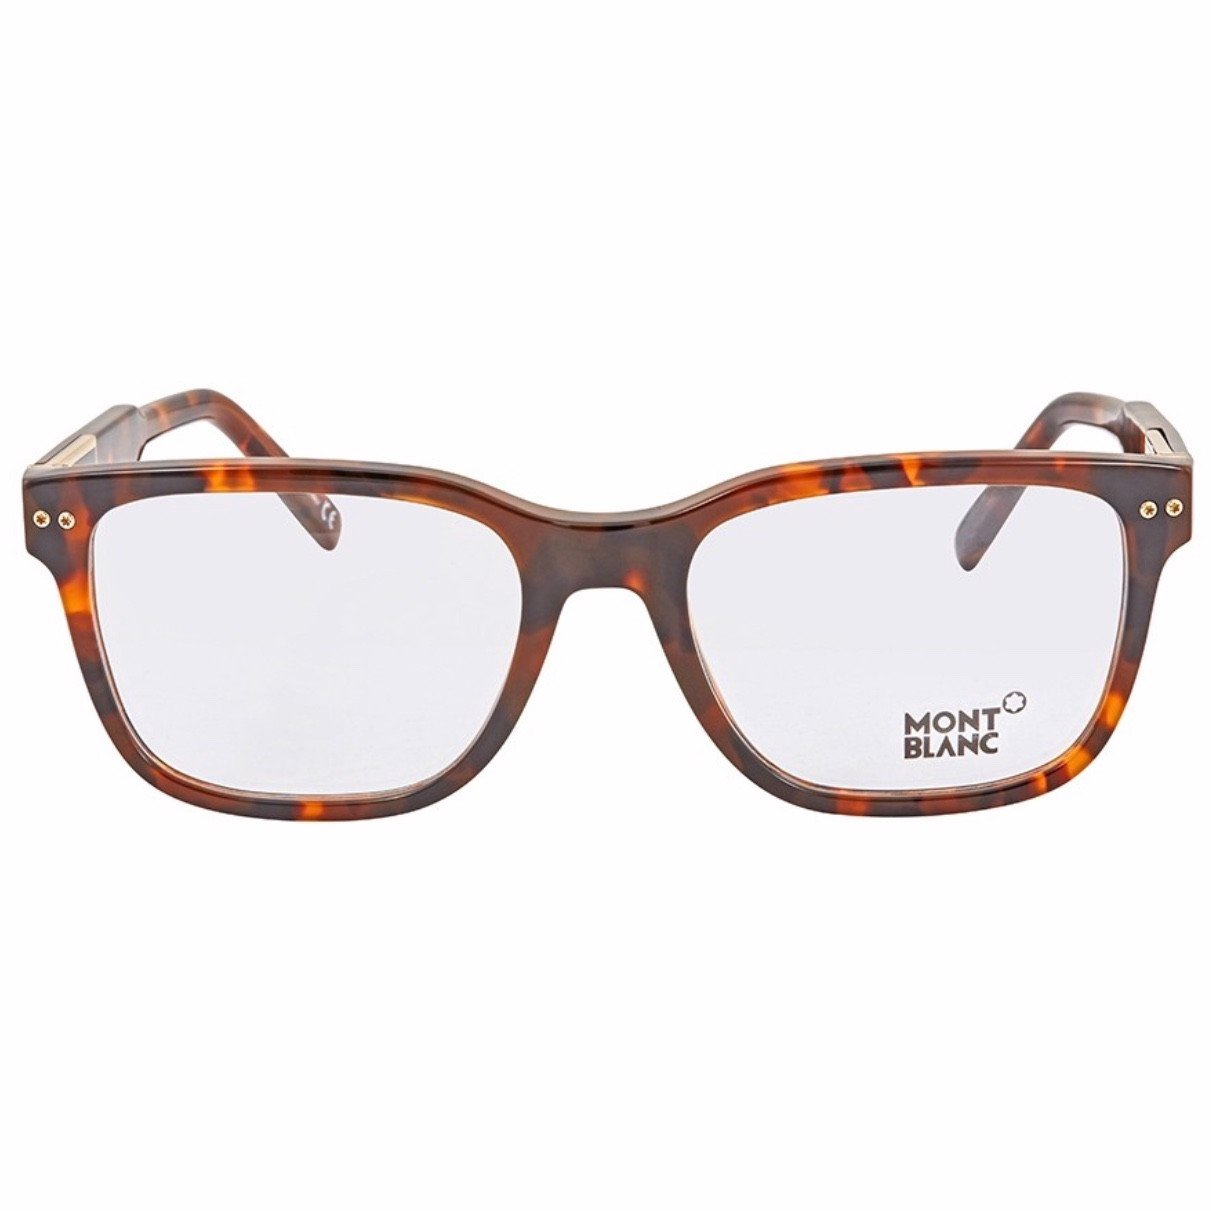 Kính nam Montblanc Dark Havana Men's Rectangle Eyeglasses